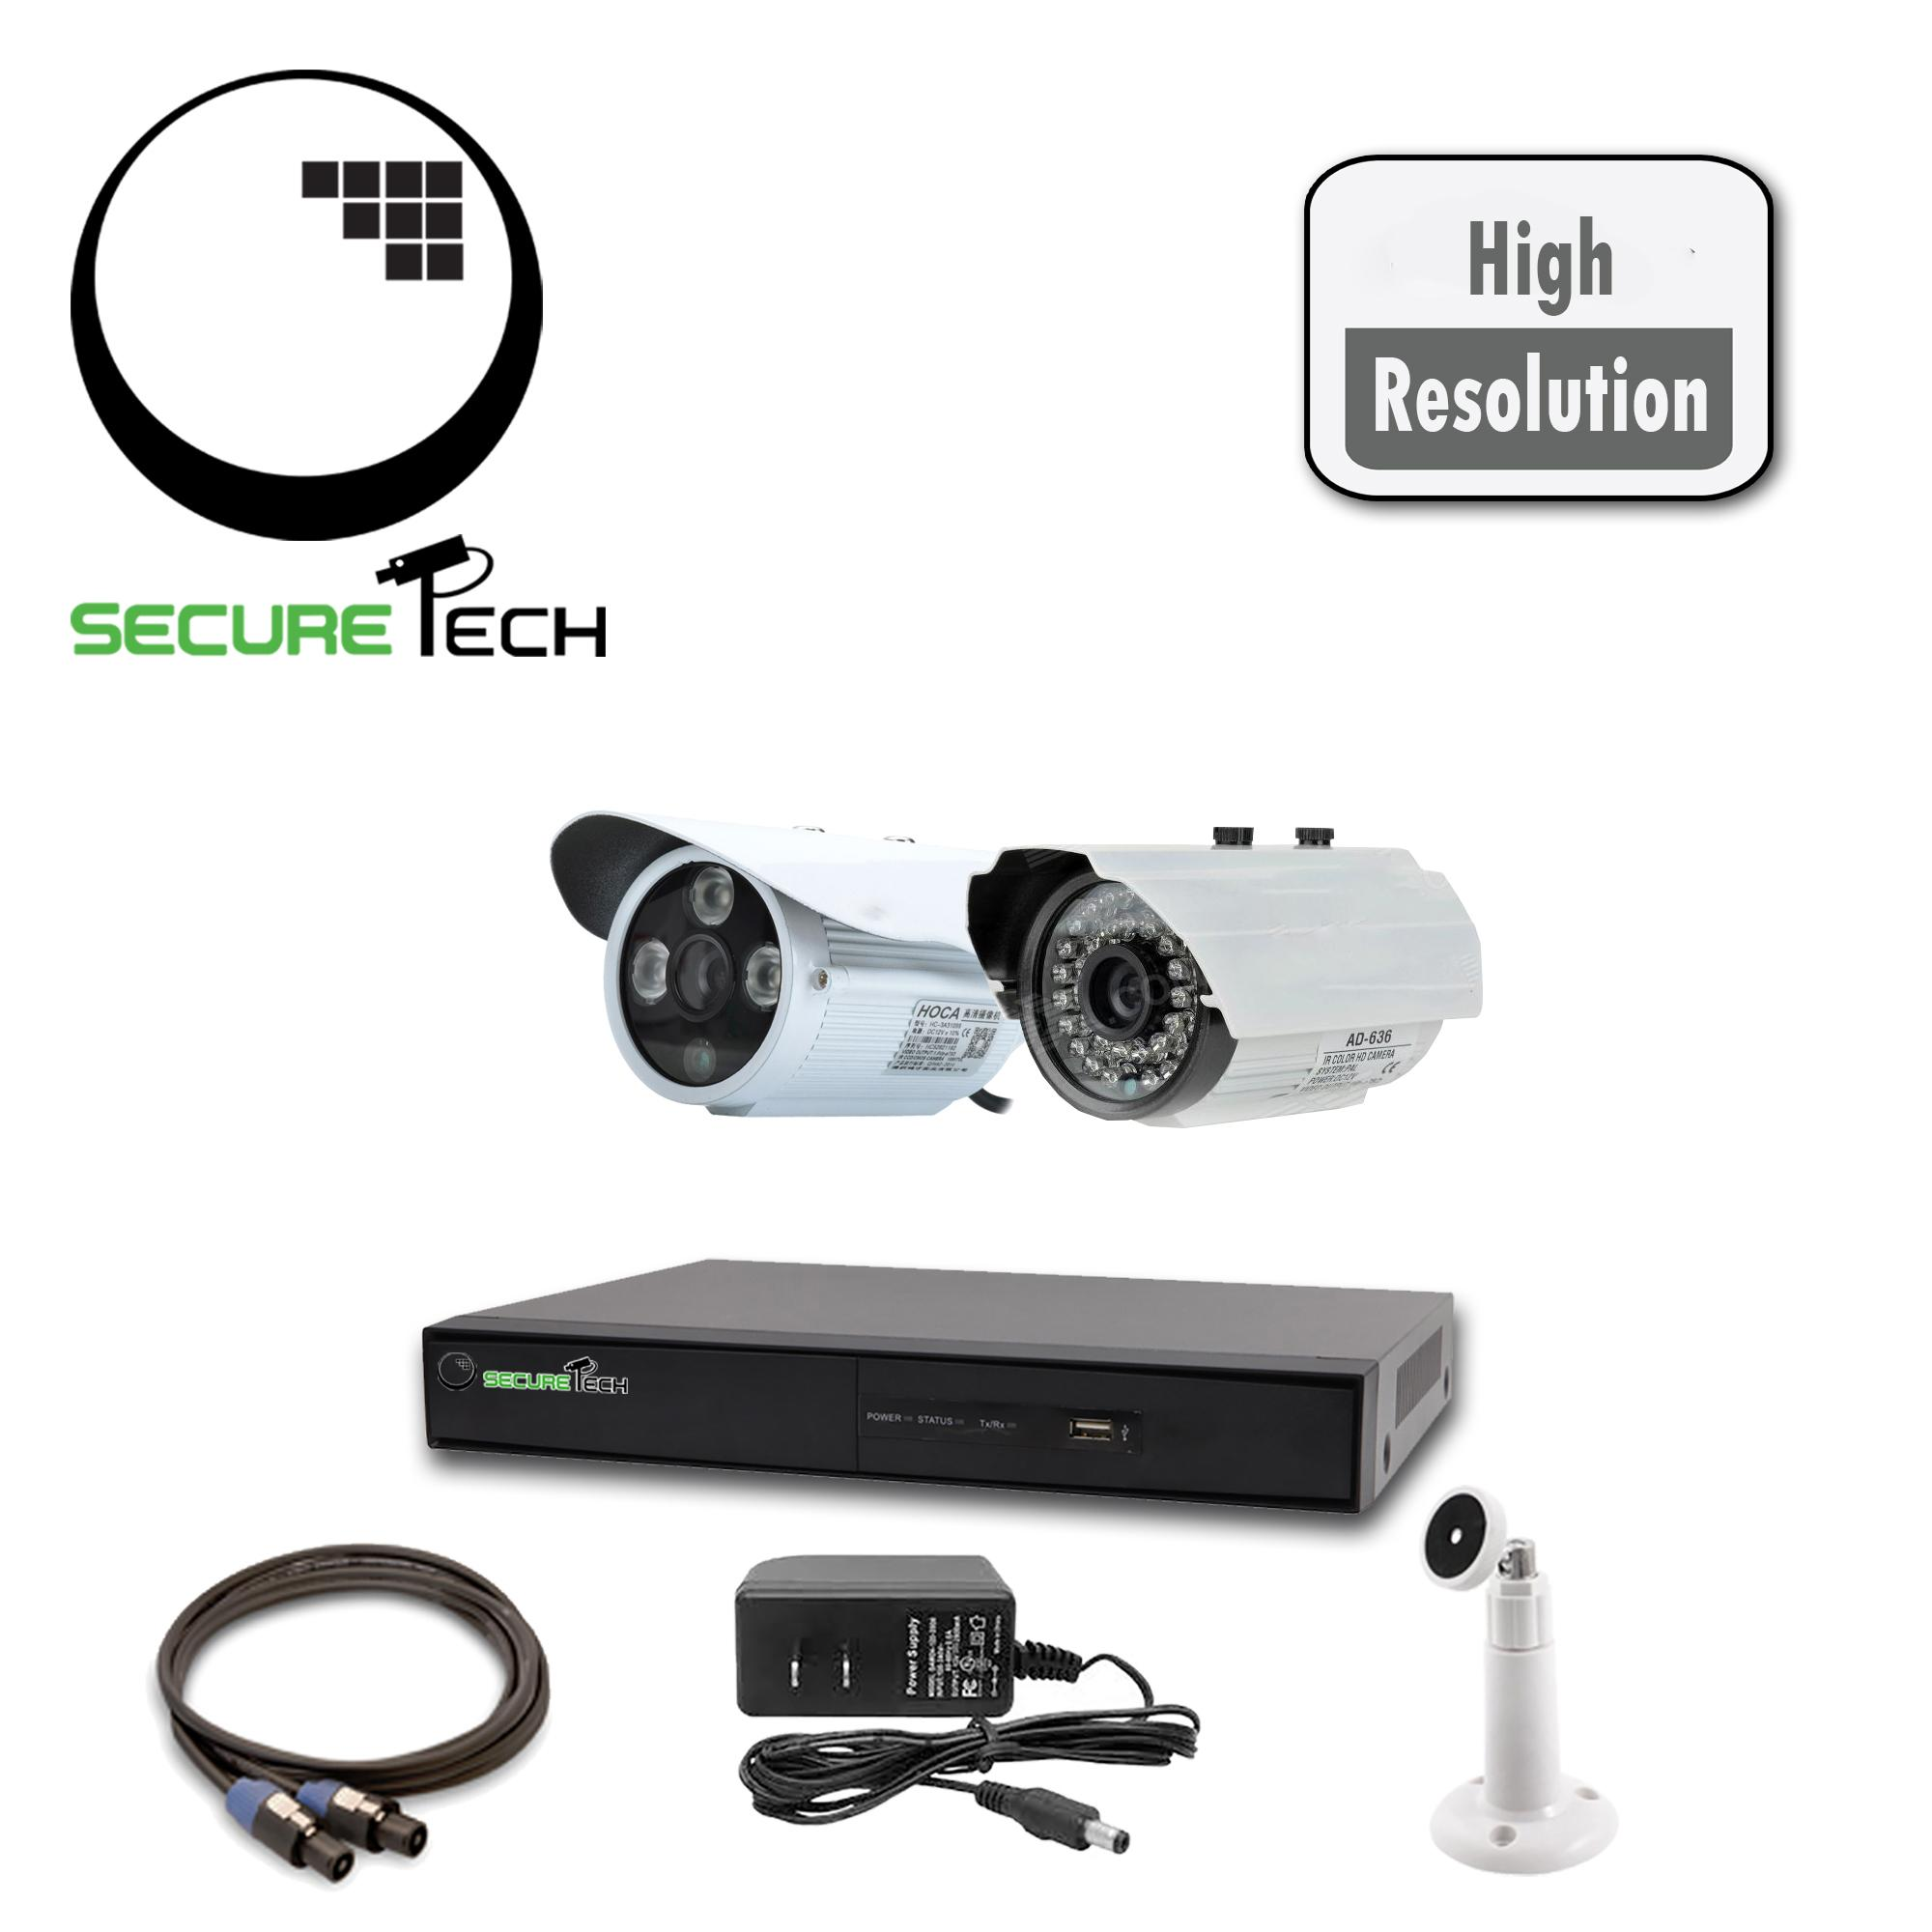 Security Cameras & Systems - Buy Security Cameras & Systems at Best